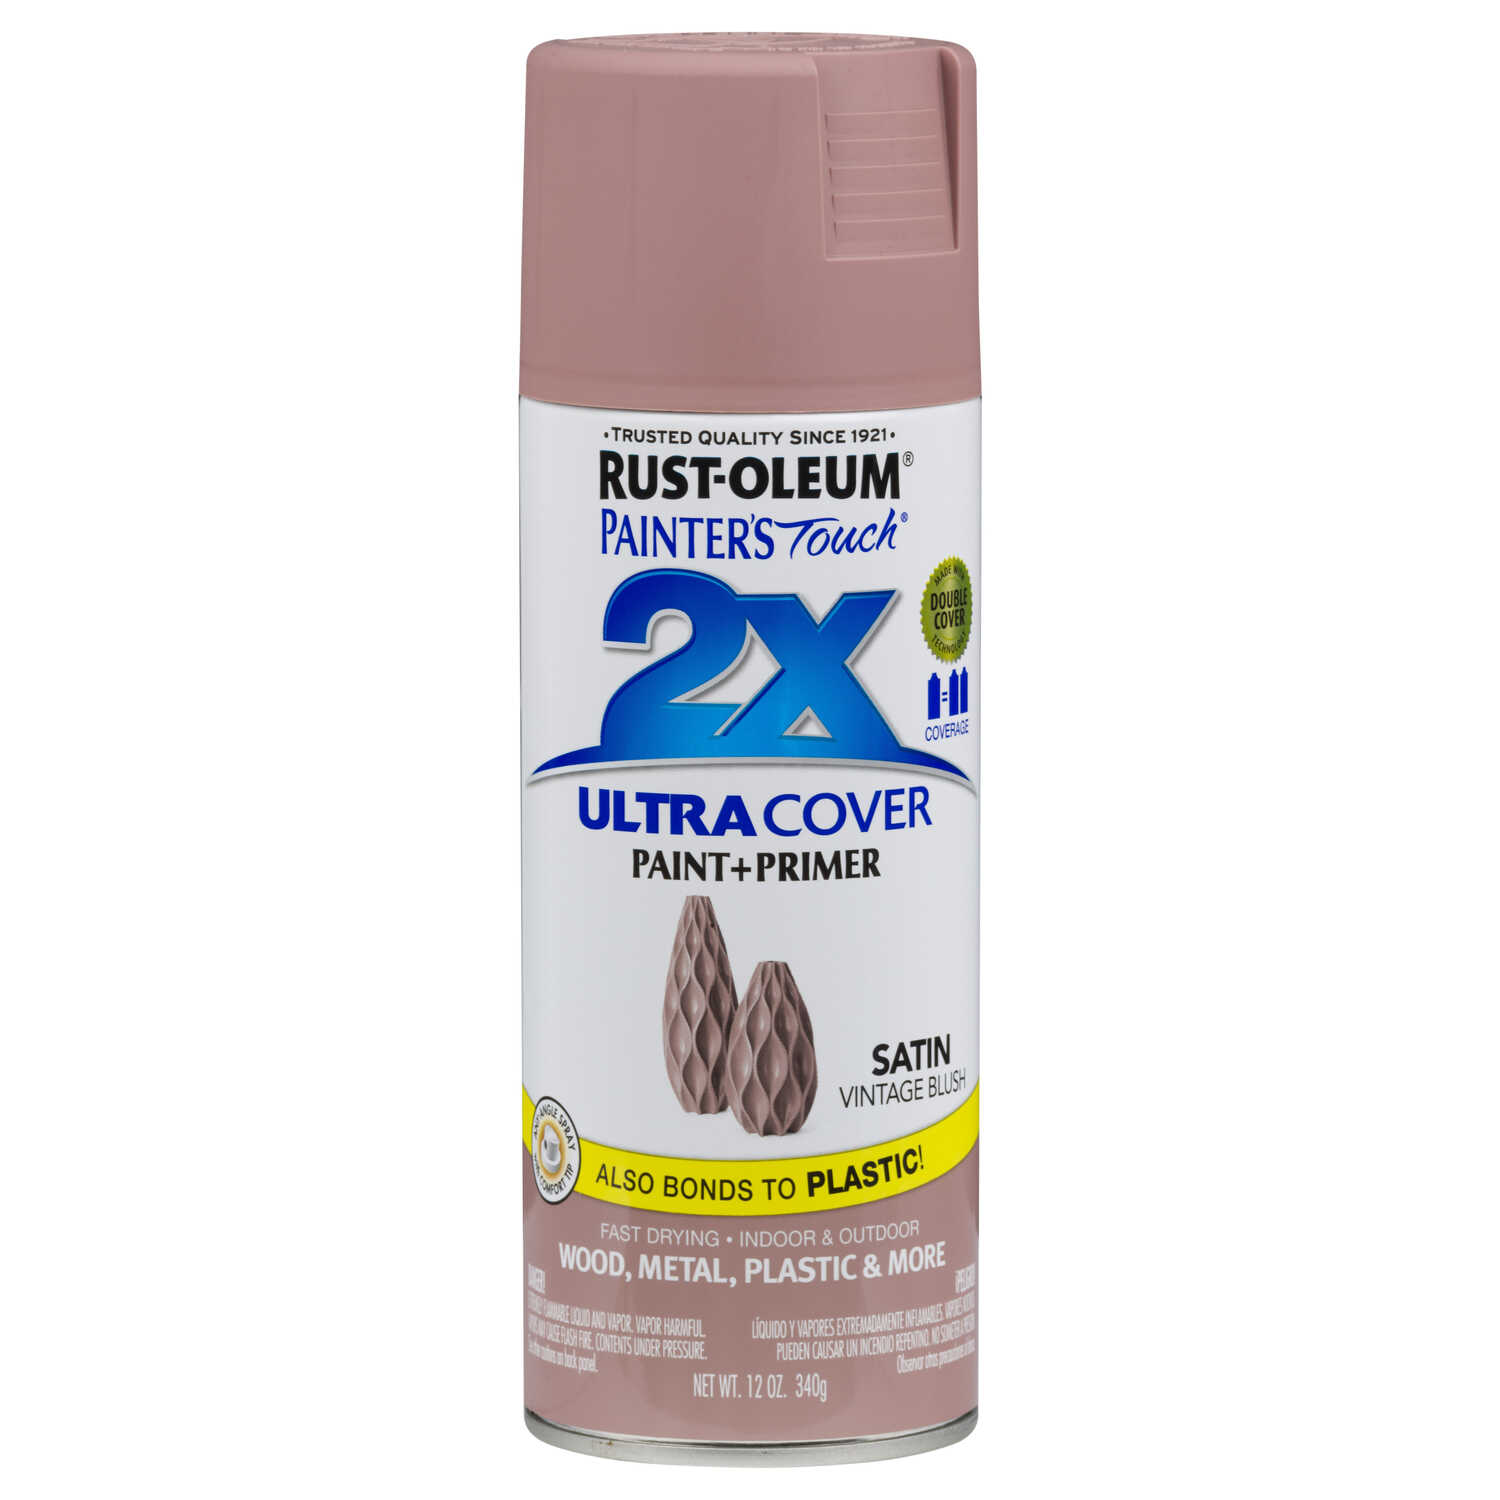 Rust-Oleum  Painter's Touch 2X  Spray Paint  12 oz. Vintage Blush